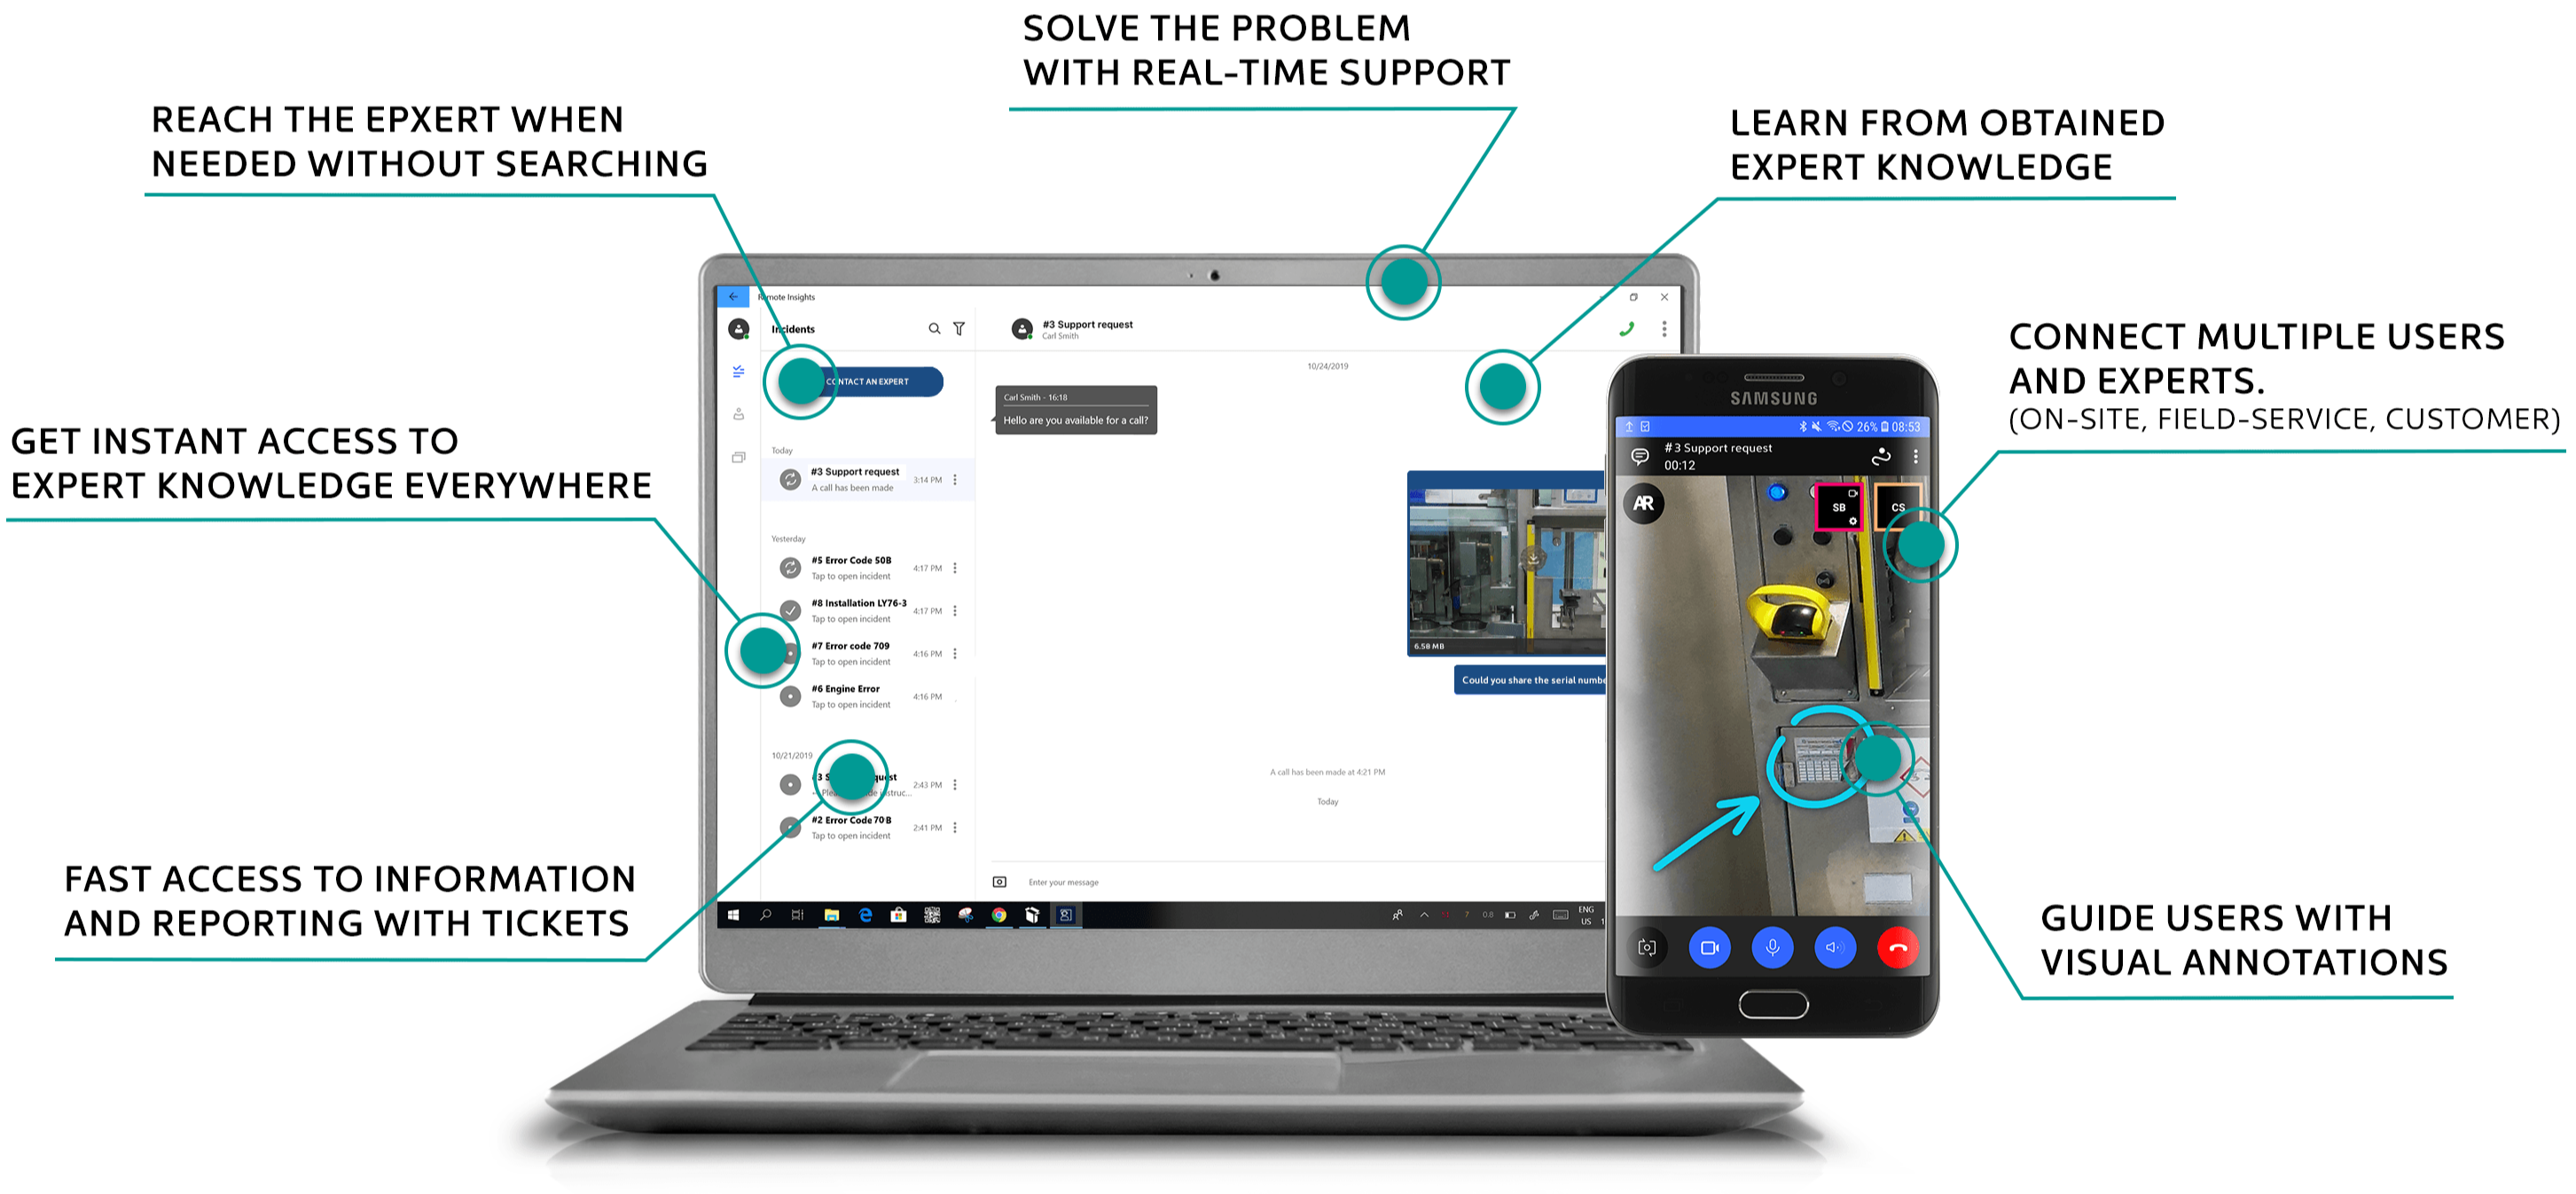 Remote support in manufacturing with augmented reality